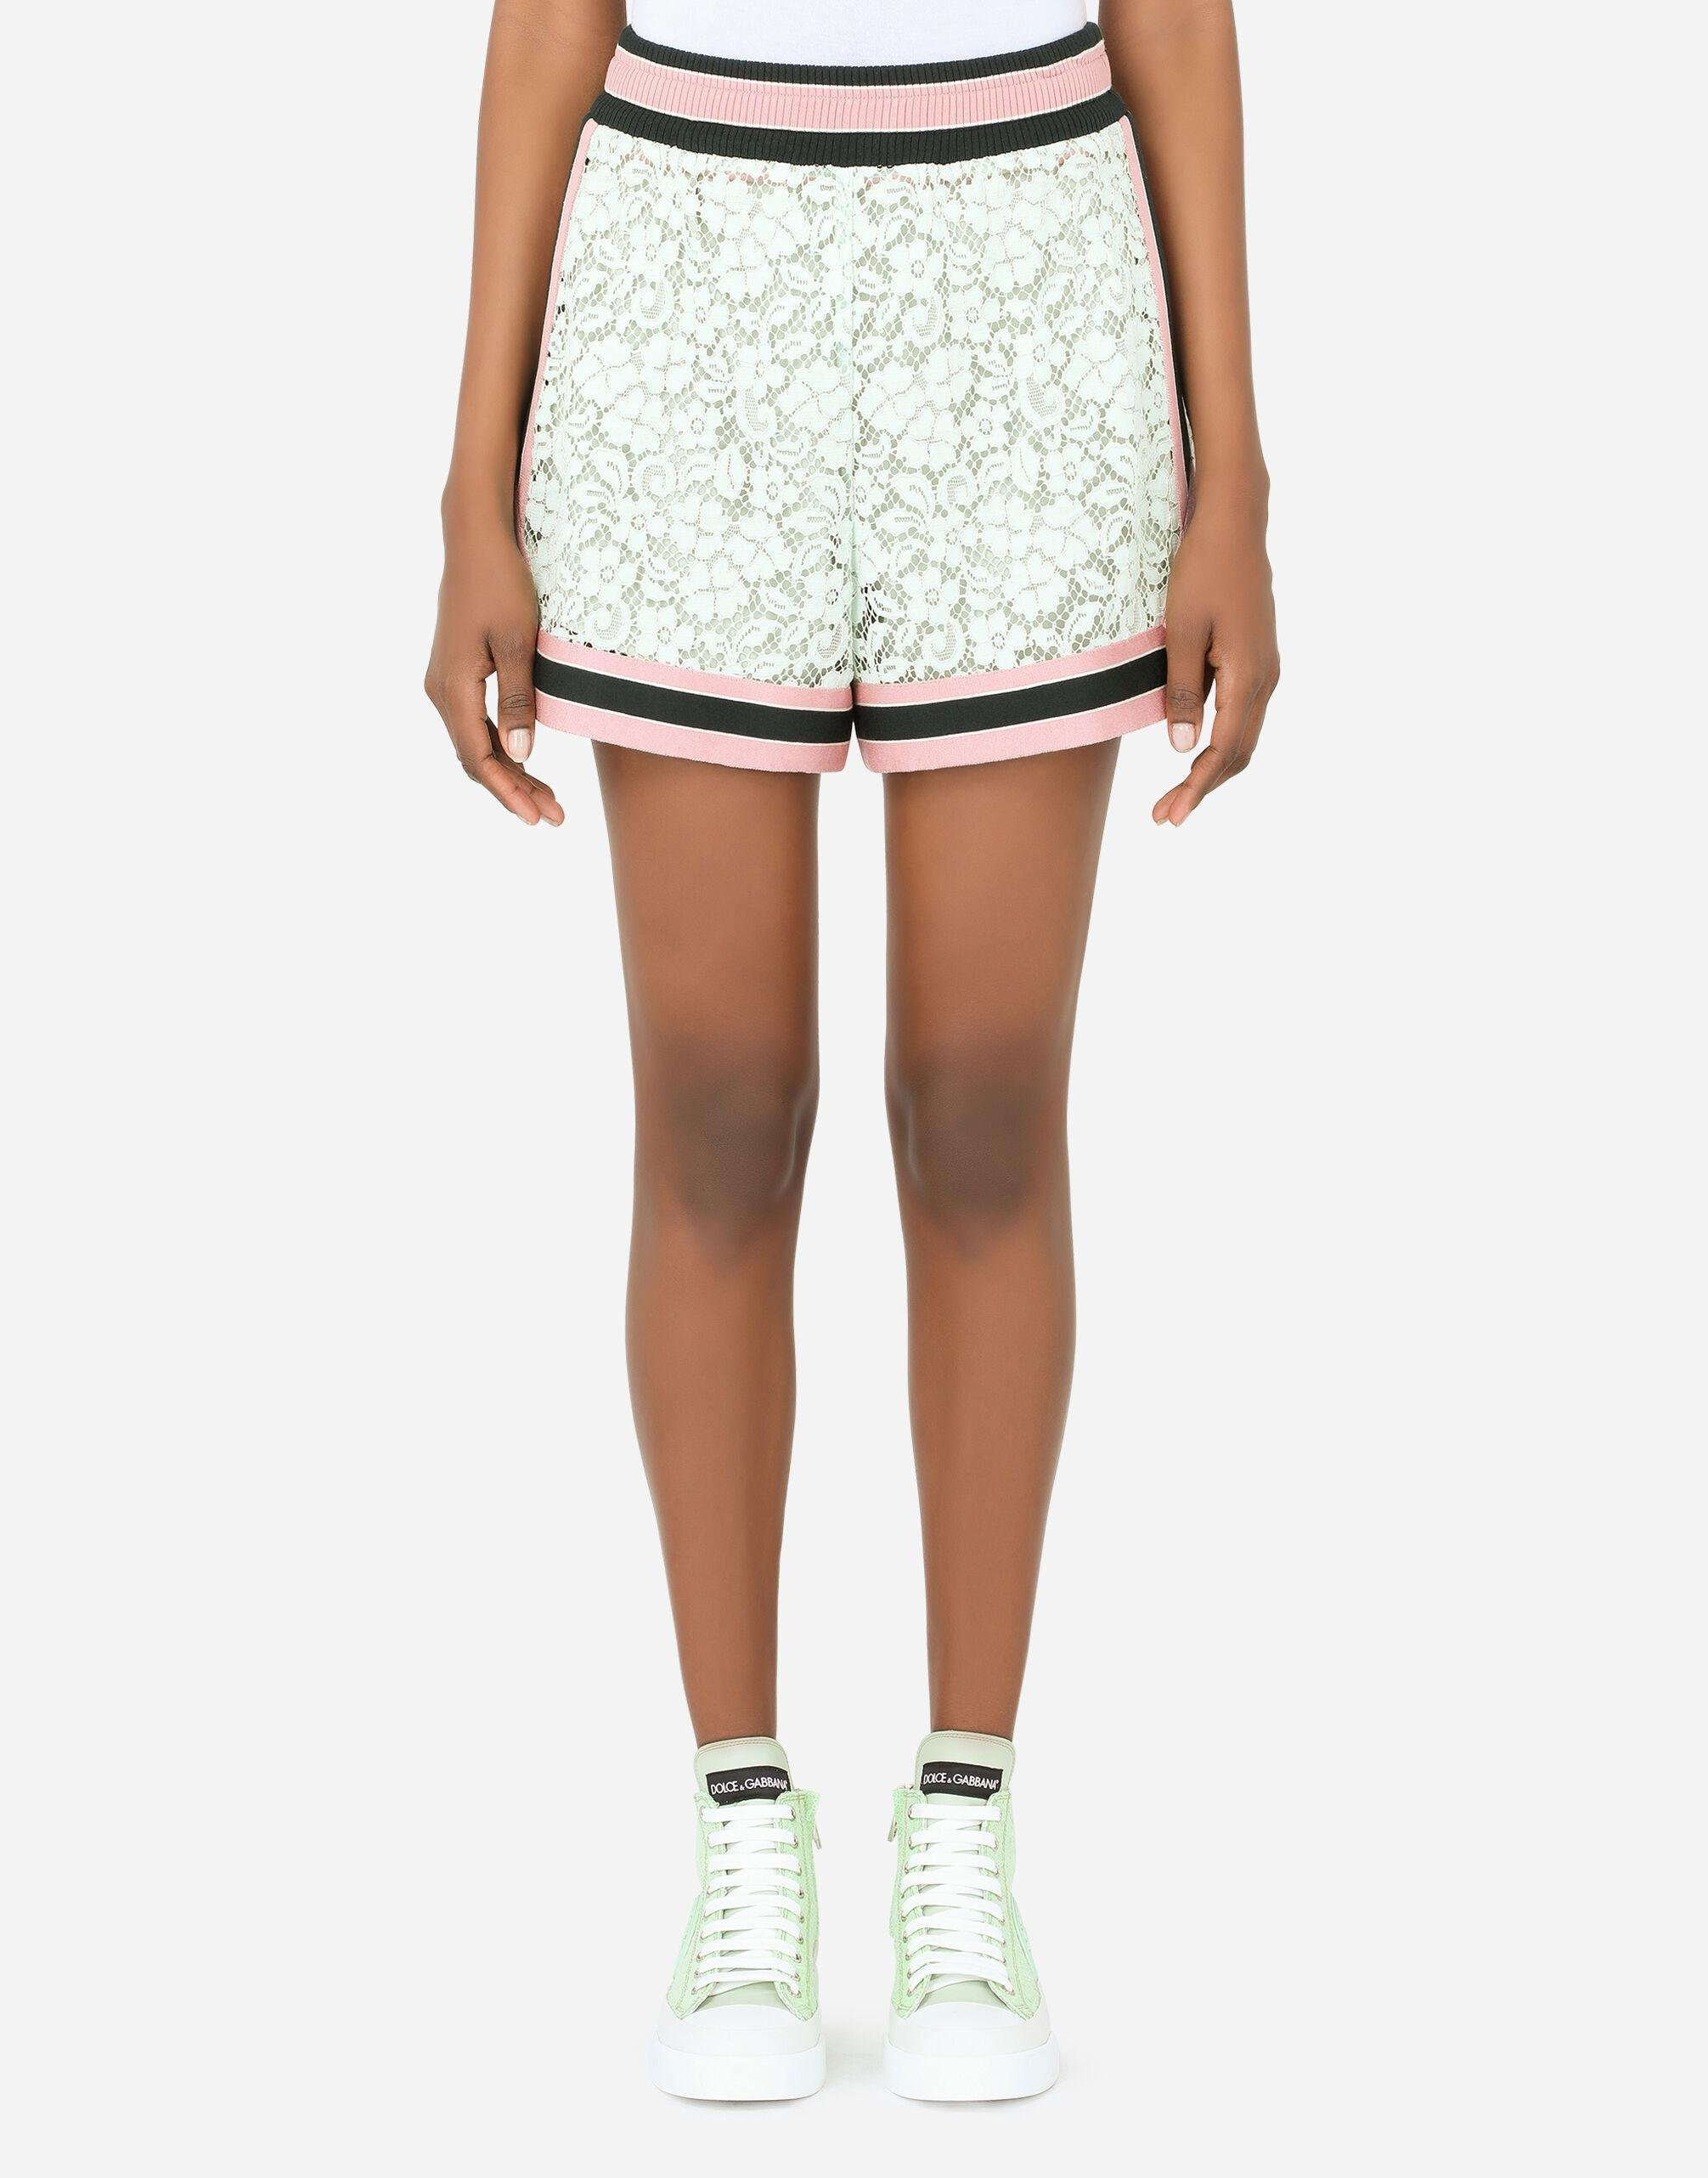 Lace shorts with contrasting trims